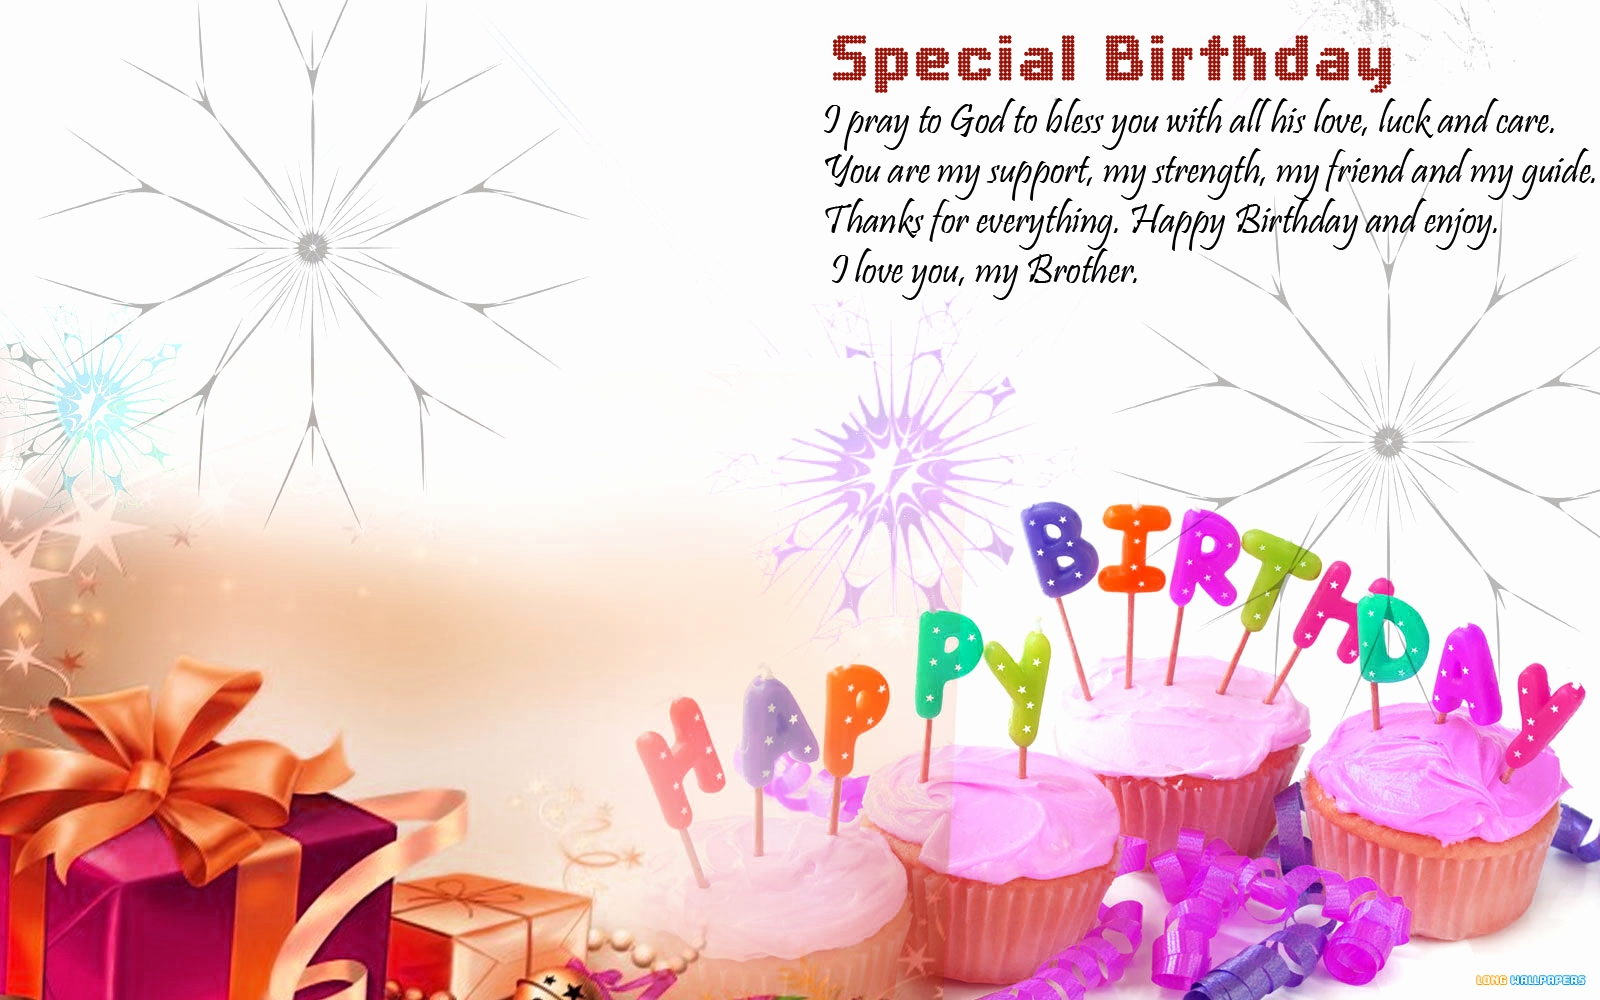 birthday wishes via text message ; free-text-message-birthday-cards-lovely-happy-birthday-messages-birthday-cards-pinterest-of-free-text-message-birthday-cards